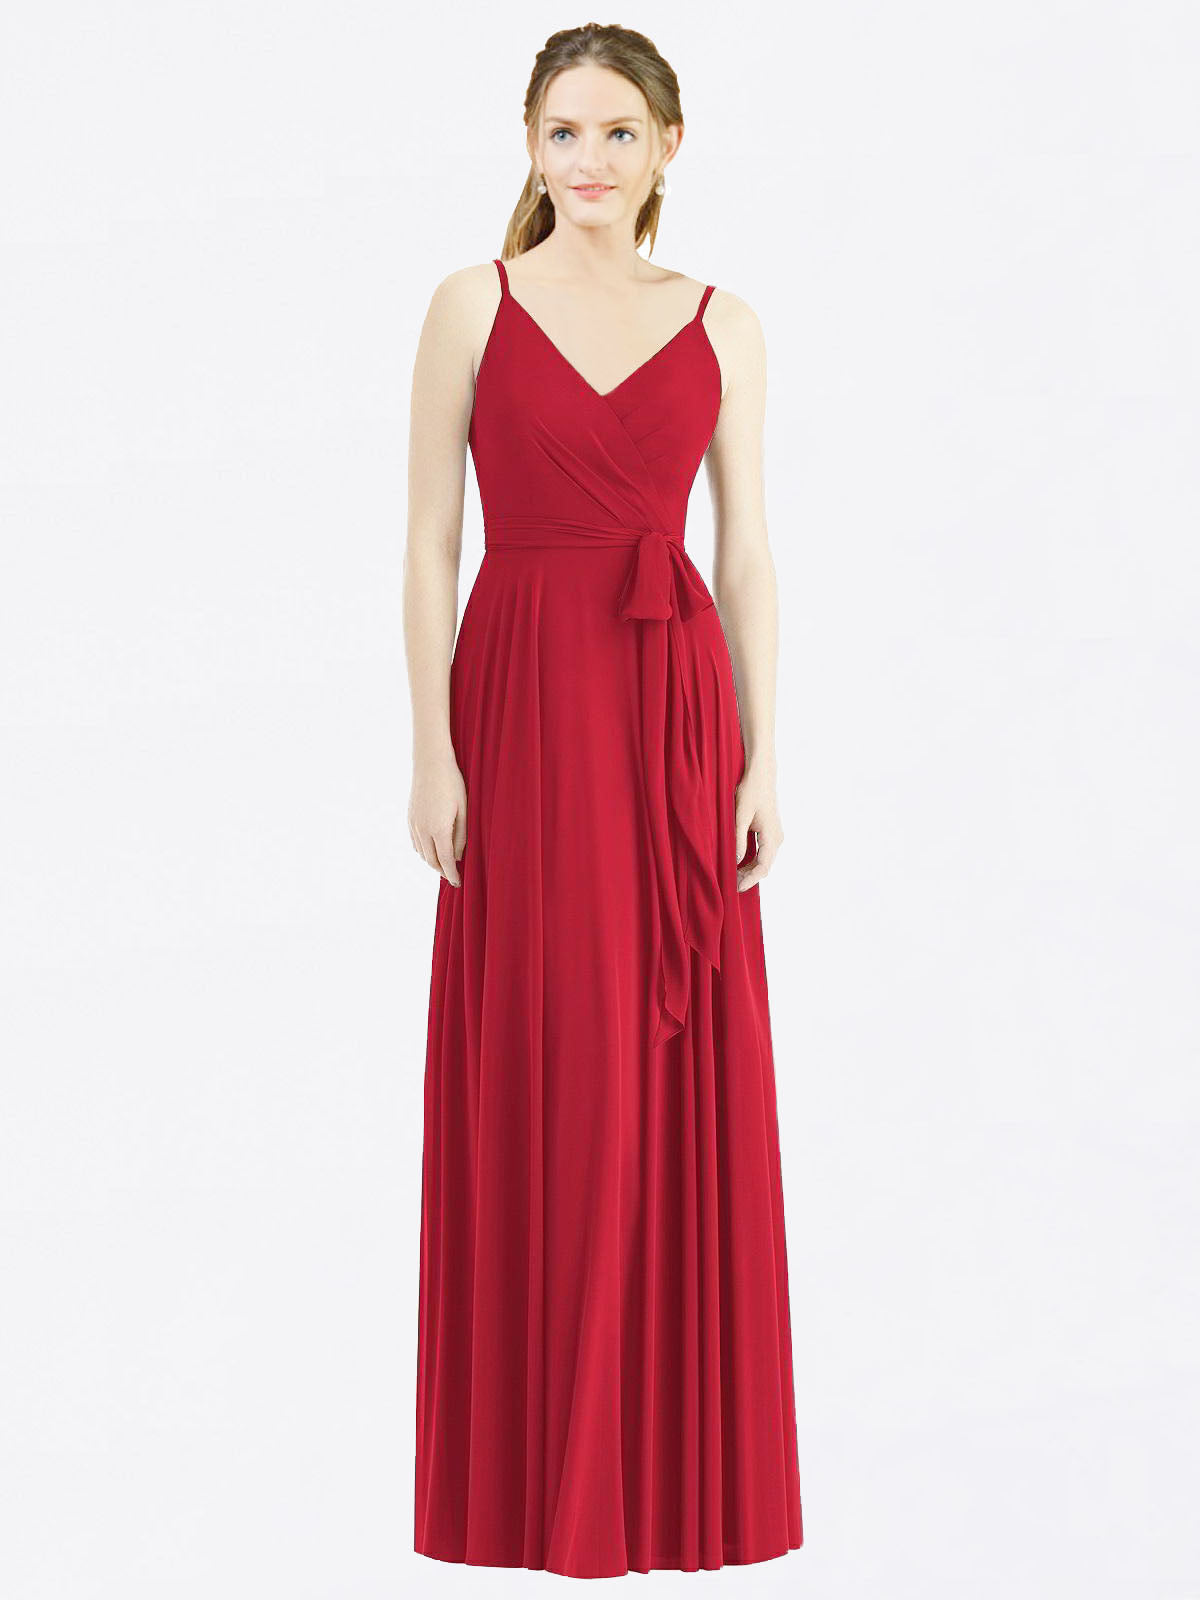 Long A-Line Spaghetti Straps, V-Neck Sleeveless Dark Red Chiffon Bridesmaid Dress Madilyn